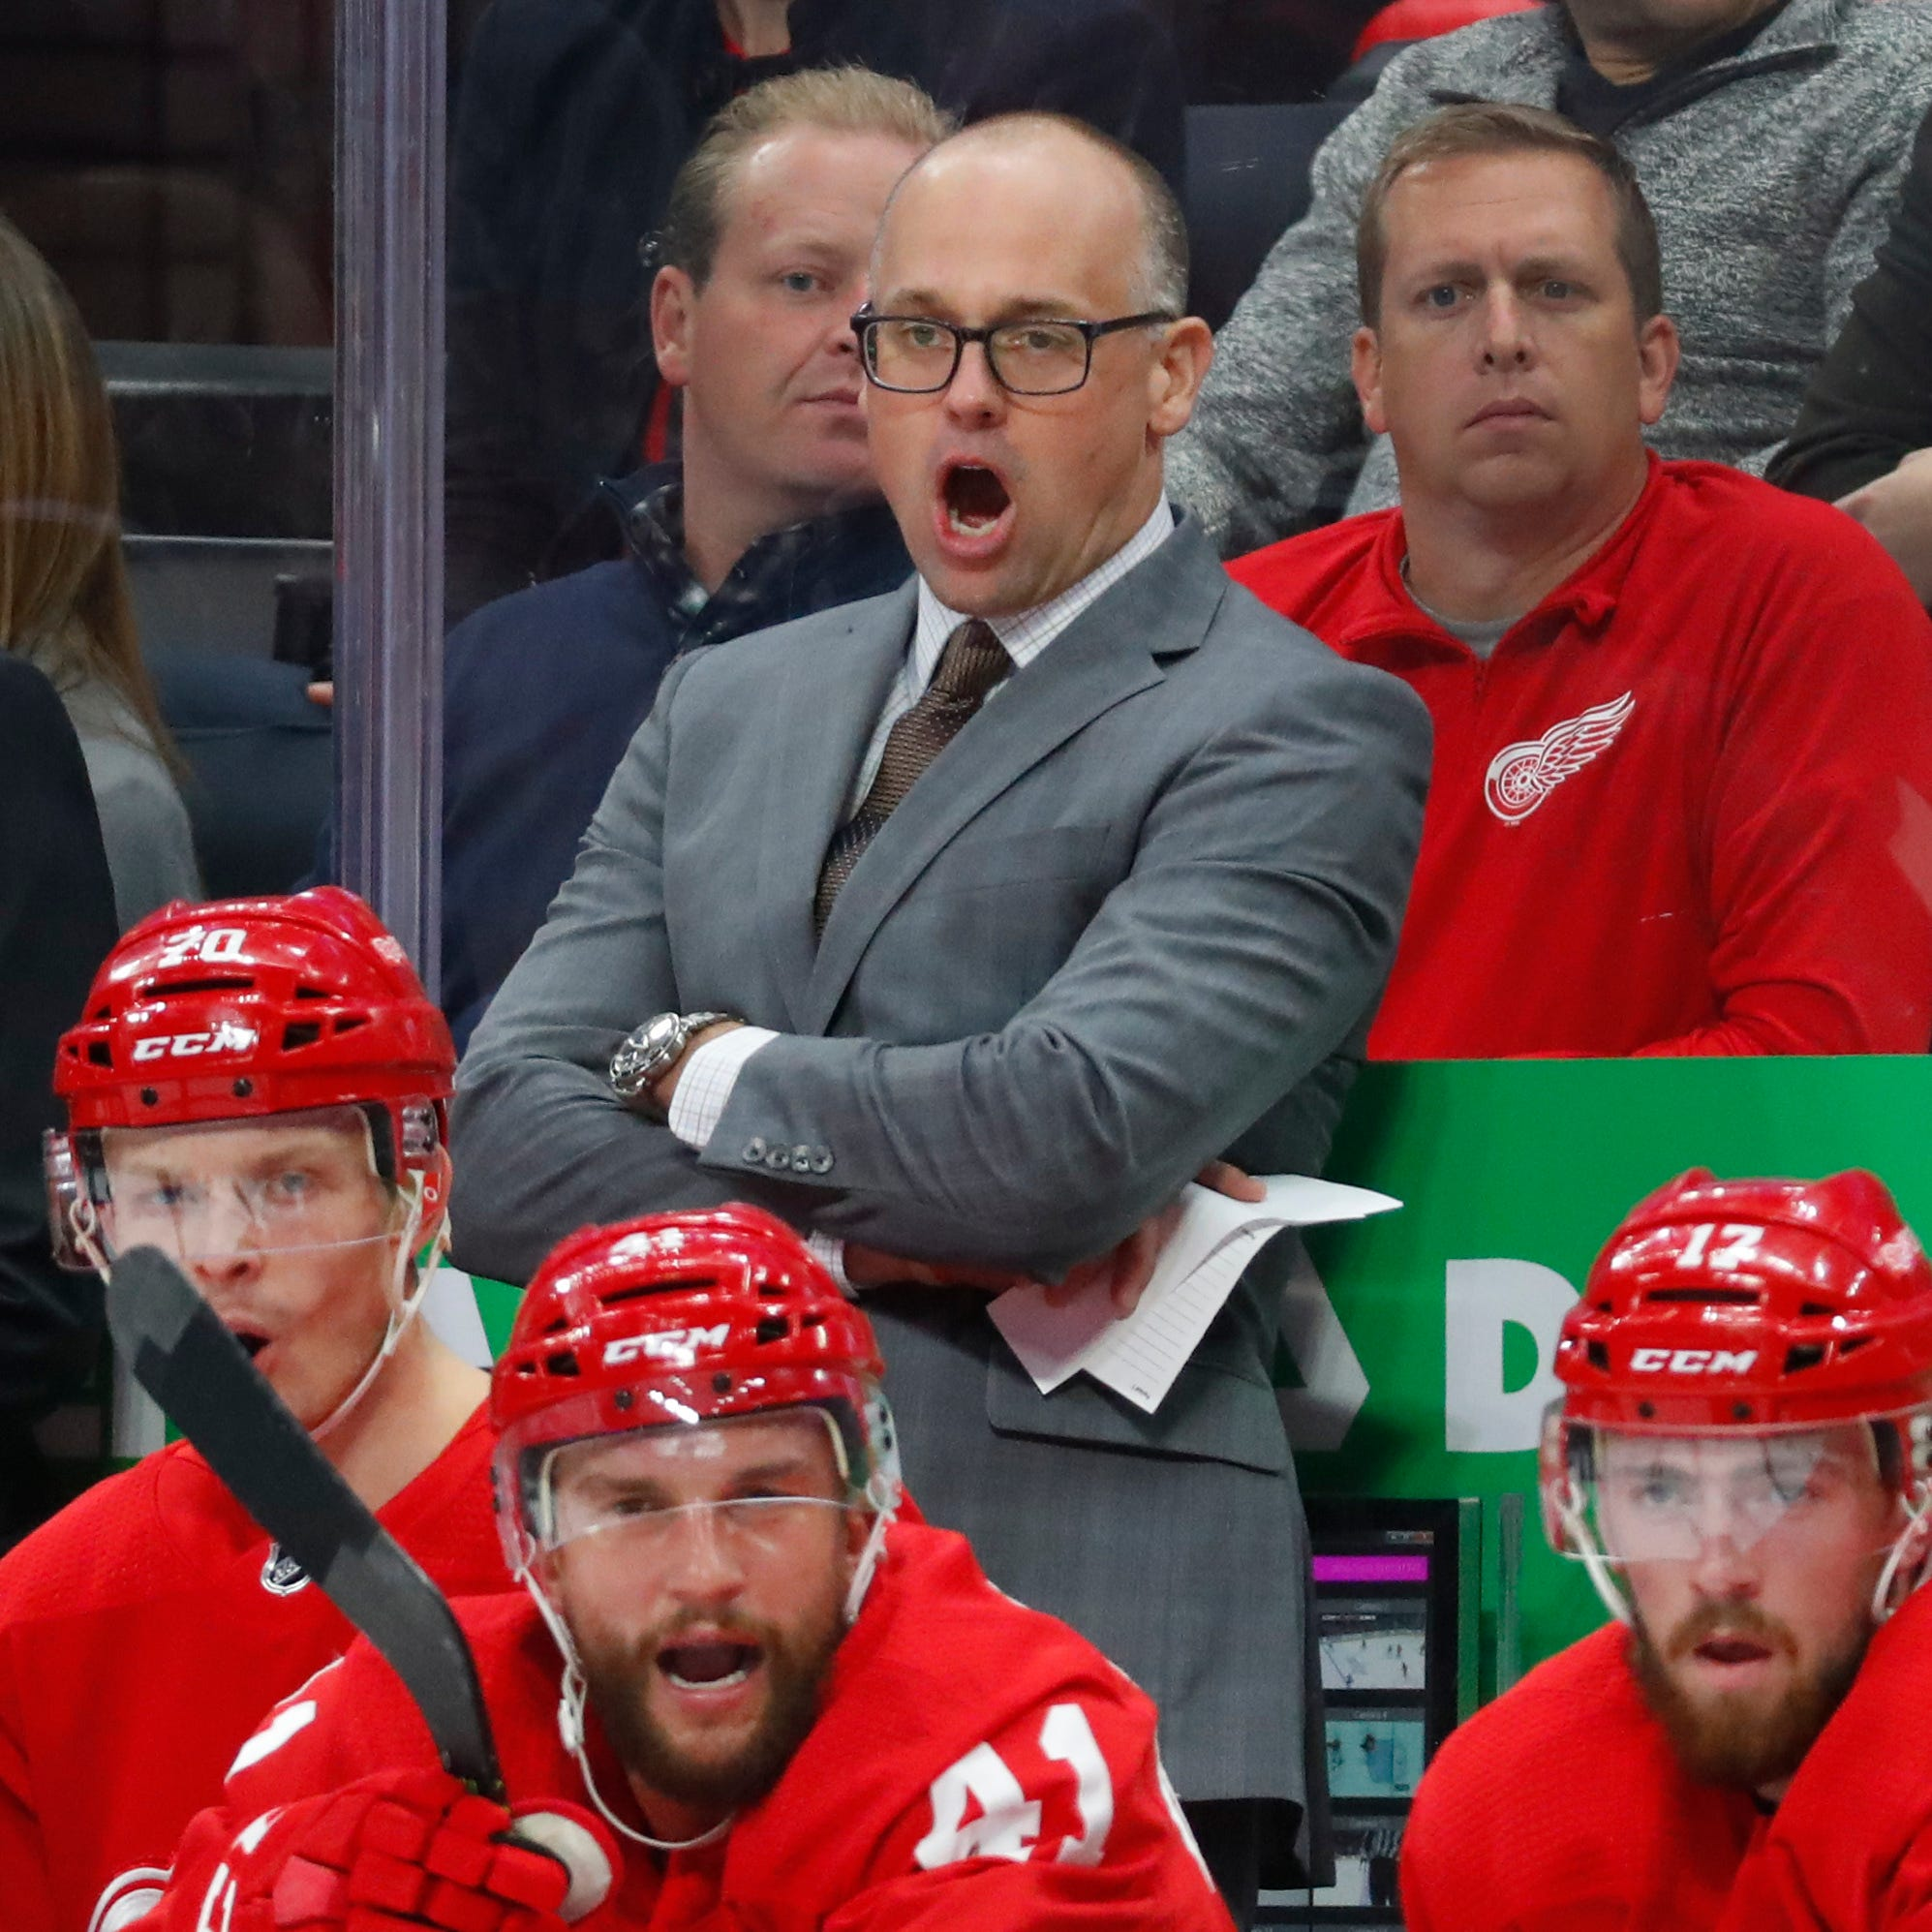 Is Detroit Red Wings coach Jeff Blashill in trouble? Let's examine